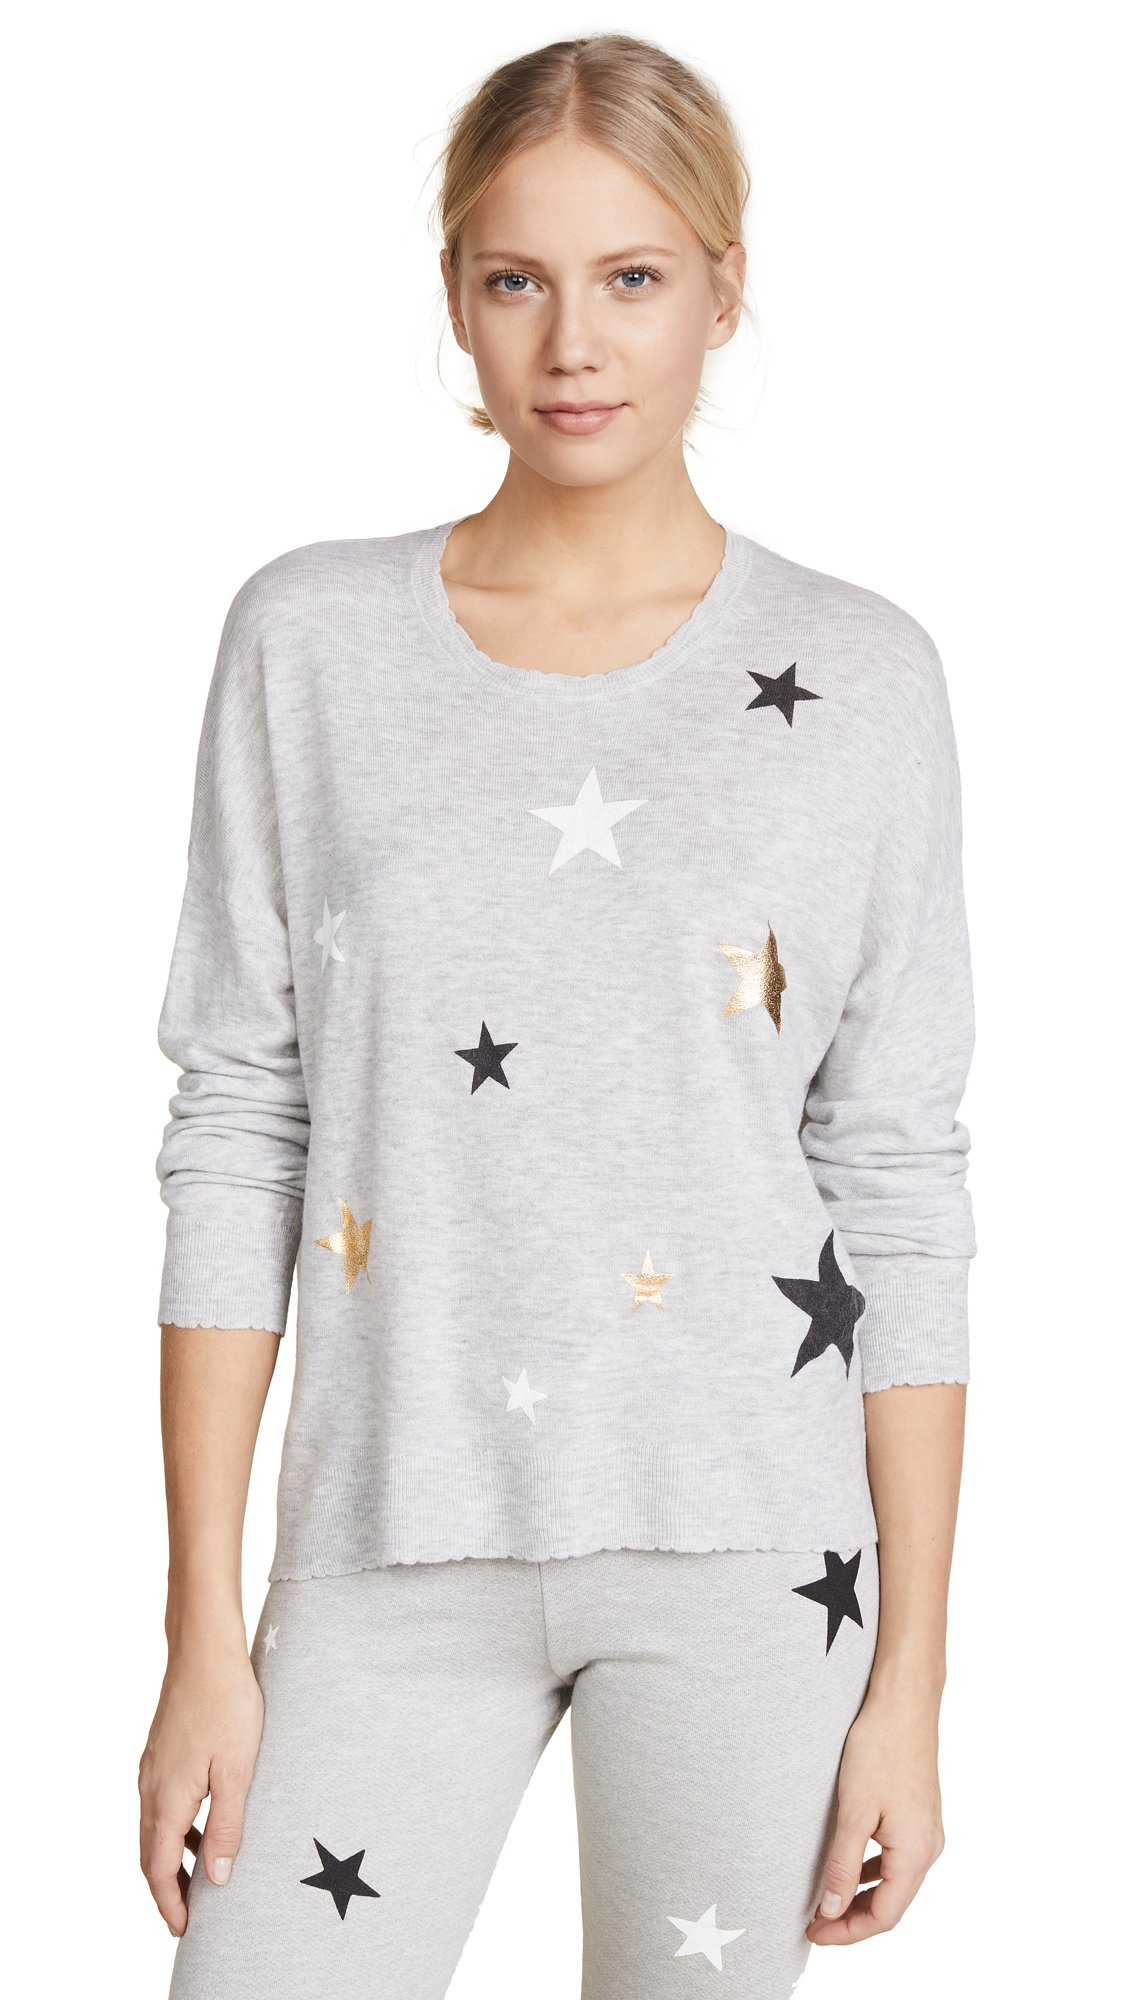 Sundry Women's Cashmere Blend Stars Sweater, Heather Grey, 3 by SUNDRY